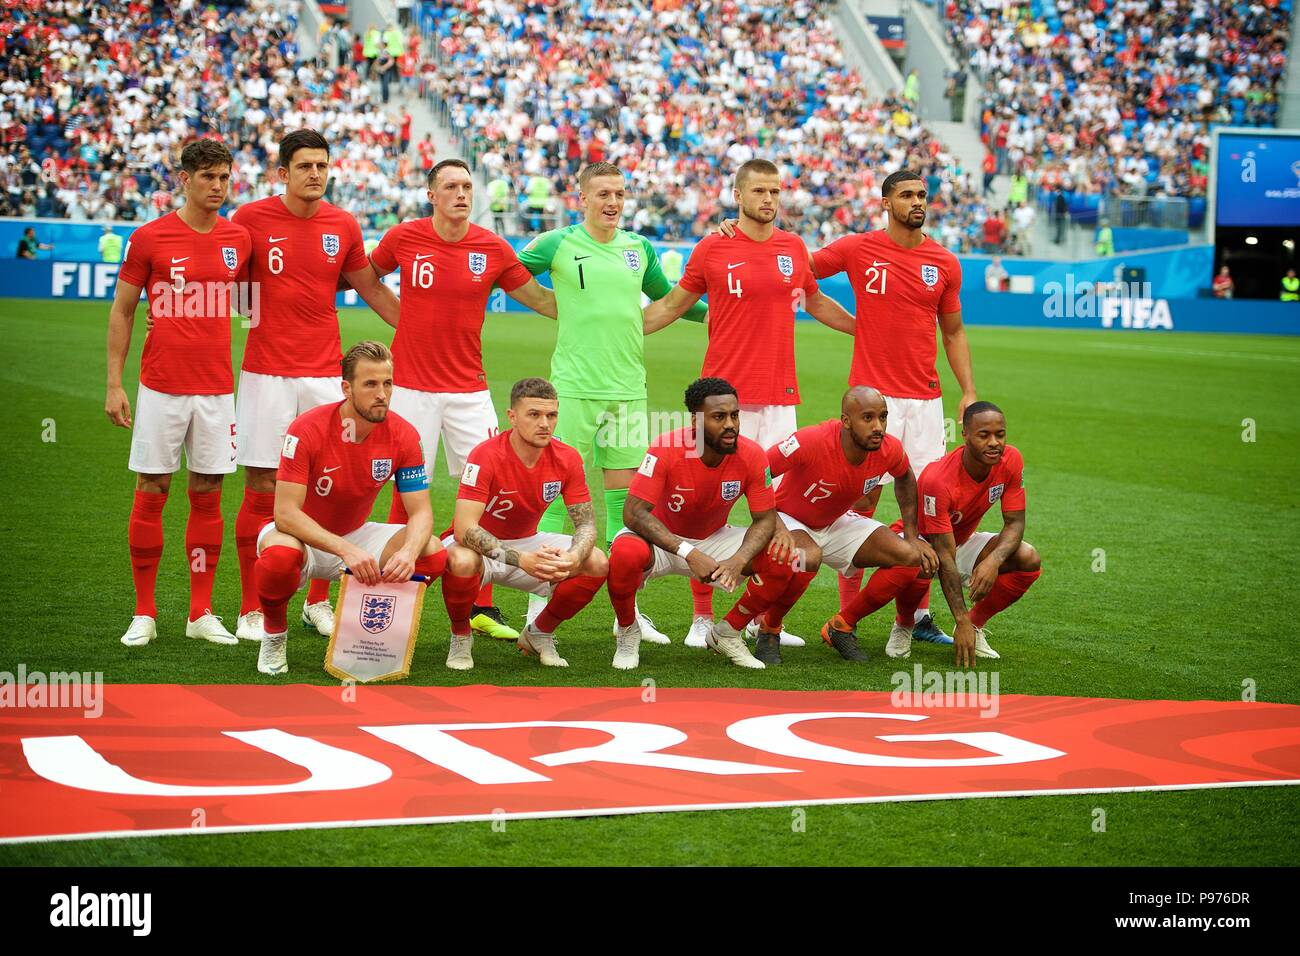 July 14th, 2018, St Petersburg, Russia. England football team pose for team photo at 2018 FIFA World Cup Russia match between England and Belgium at Saint-Petersburg Stadium, Russia. Shoja Lak/Alamy Live News - Stock Image